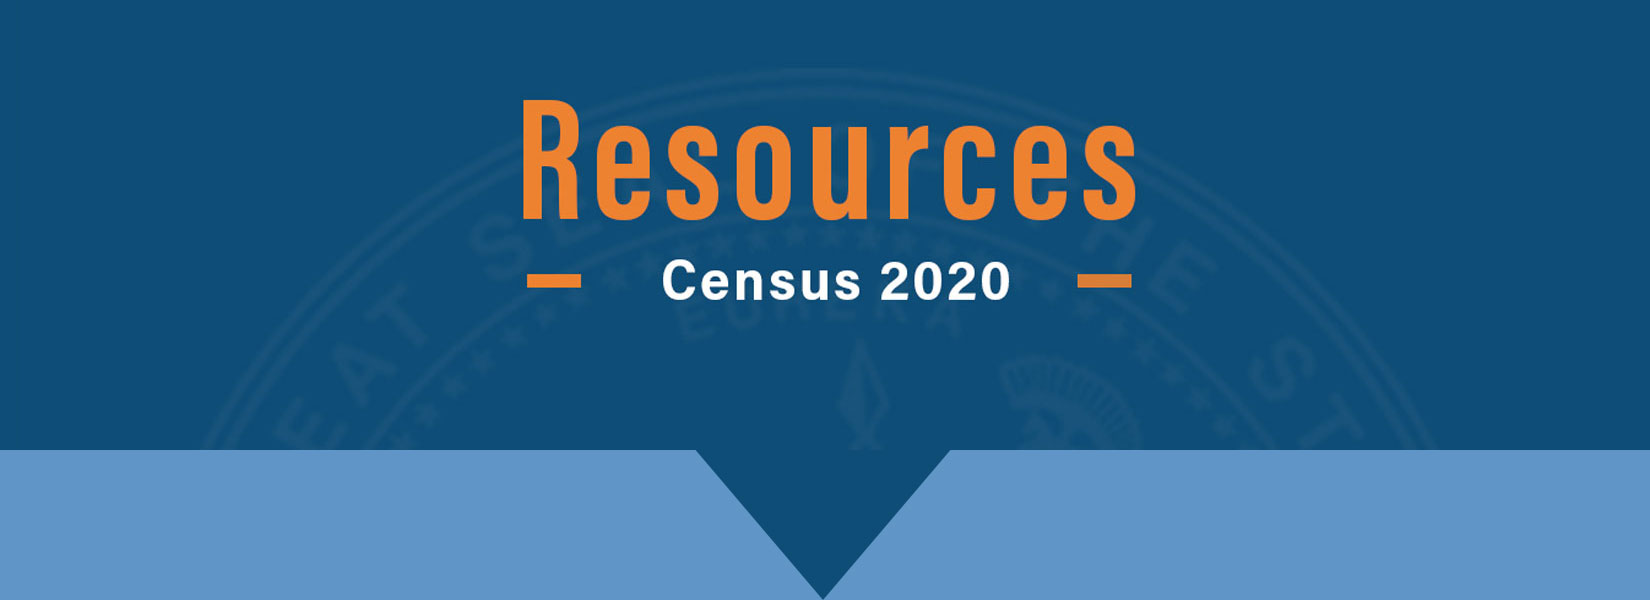 Resources Census 2020 banner